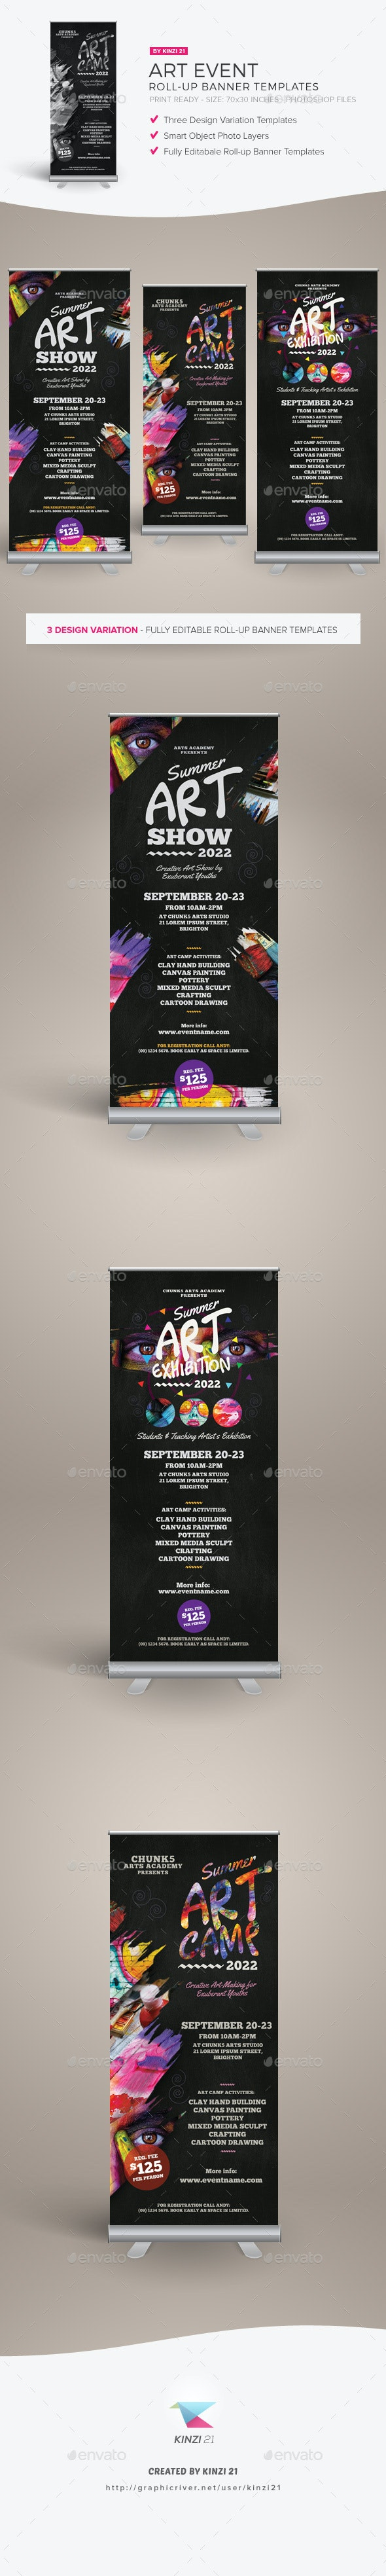 Art Event Roll-up Banner Templates - Signage Print Templates